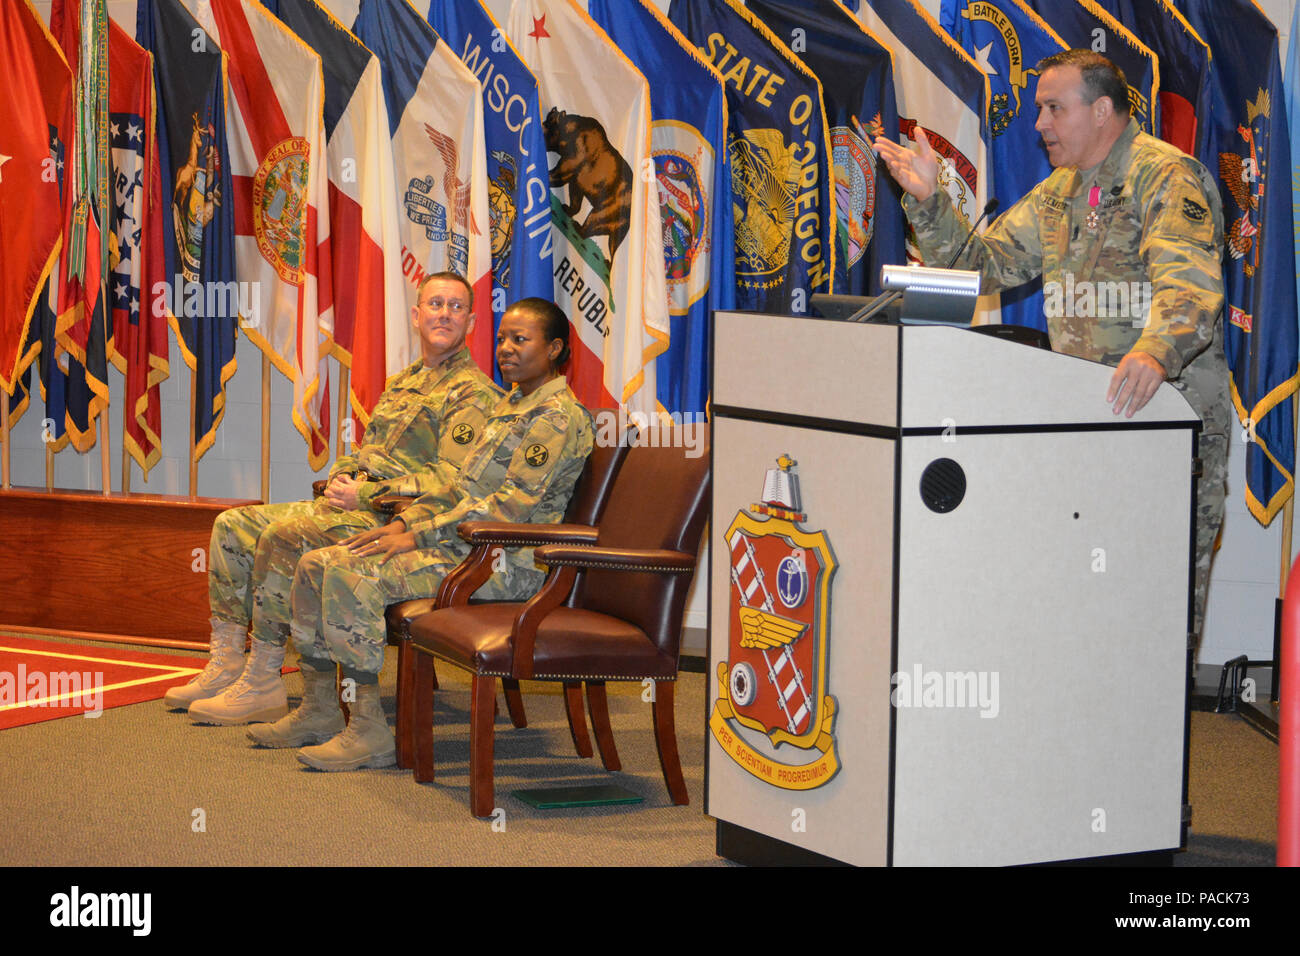 Brig. Gen. Steven W. Ainsworth, the 94th Training Division commander, and Command Sgt. Maj. Sharon Campbell, the 94th TD's new command sergeant major, listens as Command Sgt. Maj. Arlindo Almeida, the division's outgoing command sergeant major delivers his farewell address during a change or responsibility ceremony, Fort Lee, Va., where Almeida officially transferred his senior noncommissioned officer responsibilities to Campbell making her the division's first female command sergeant major March 18, 2016. - Stock Image